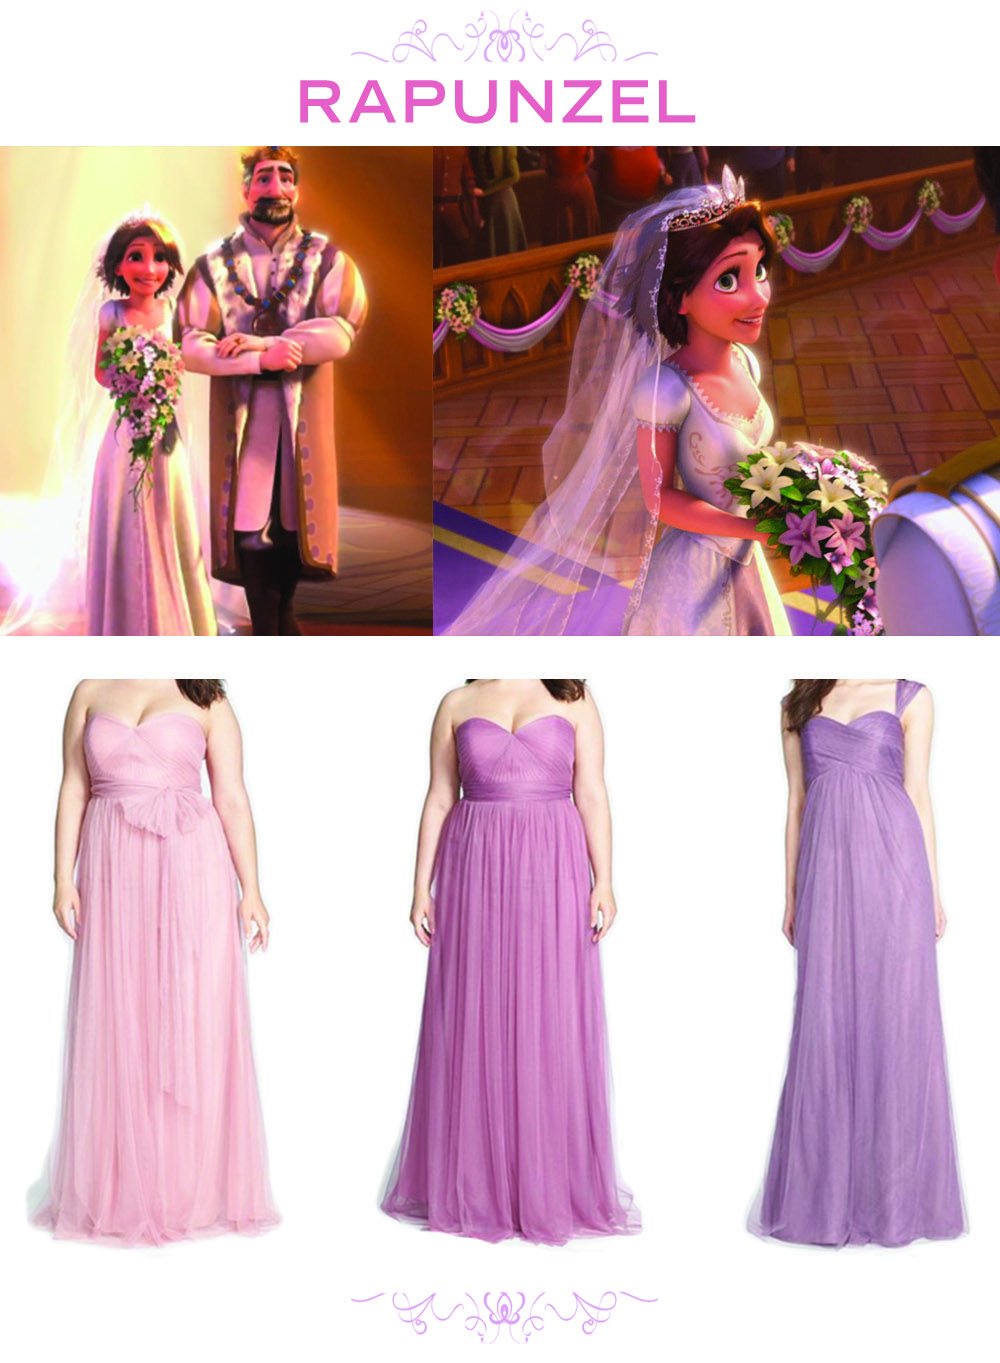 6 Bridesmaid Sets Inspired By Disney Weddings Tangled Rapunzel Lavender Purple Bridesmaids Dresses